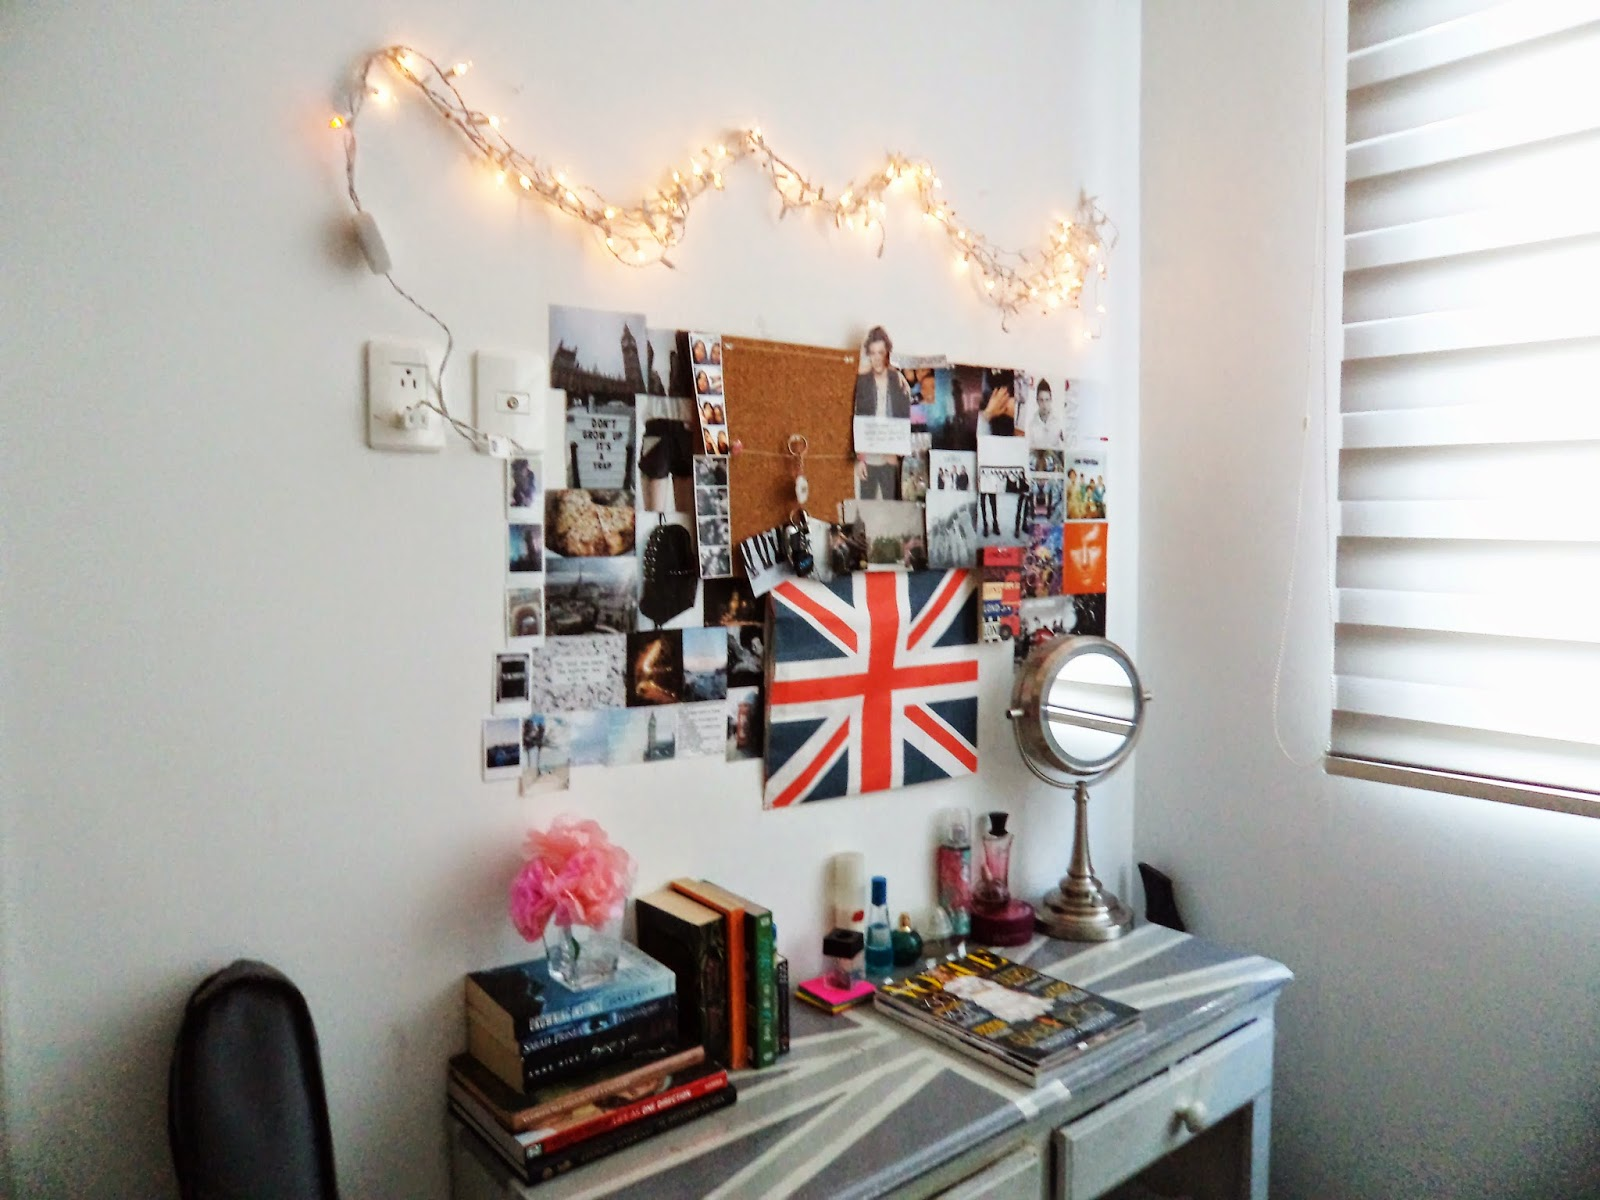 Diy decora tu cuarto estilo tumblr f cil y sin gastar for Como decorar una pieza